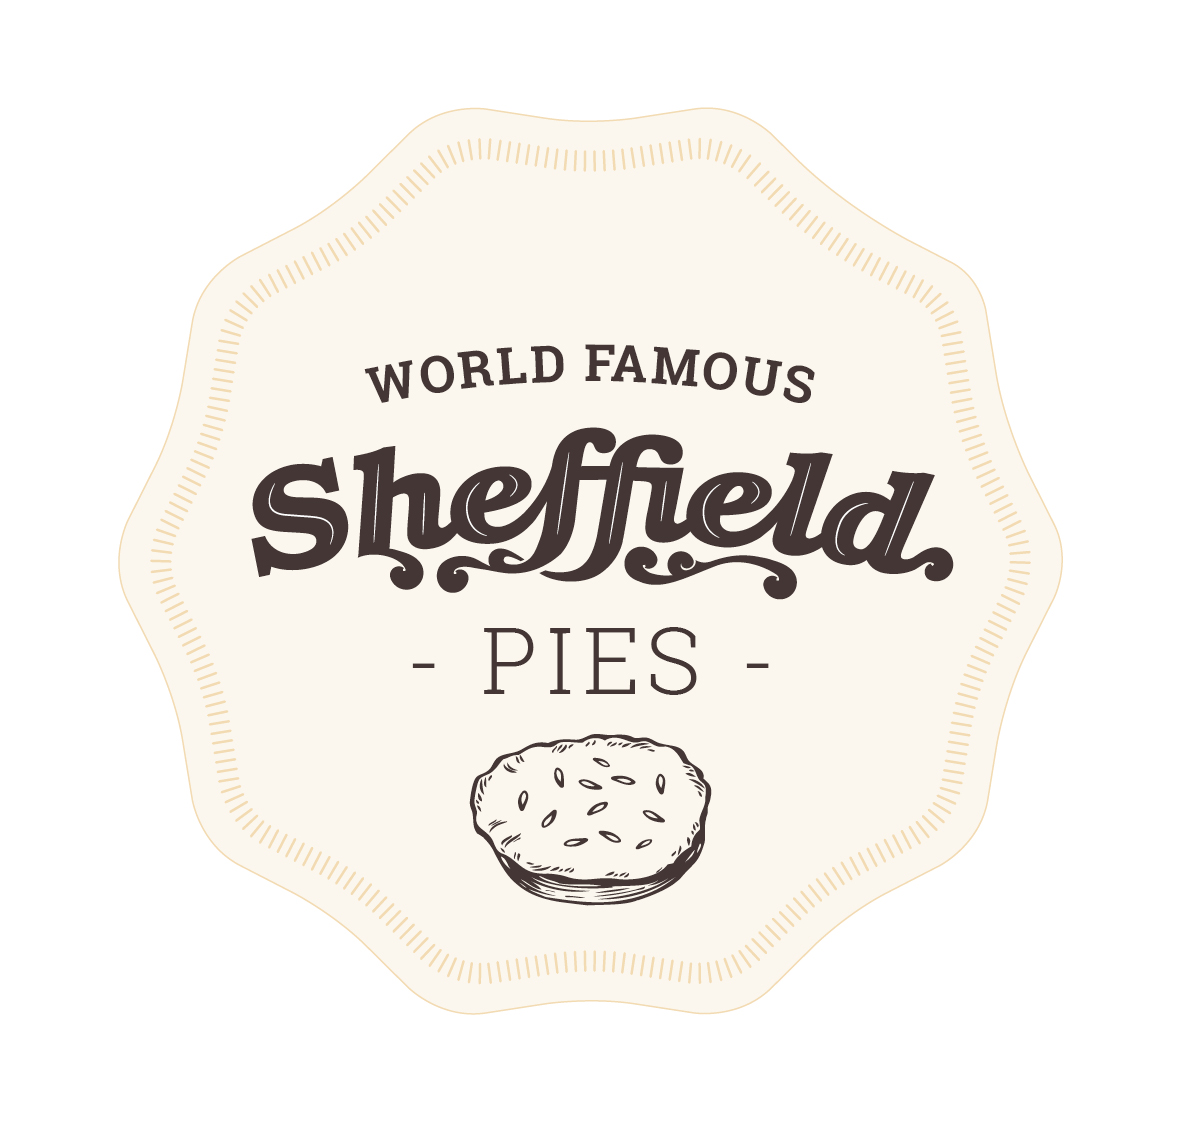 Sheffield Pies